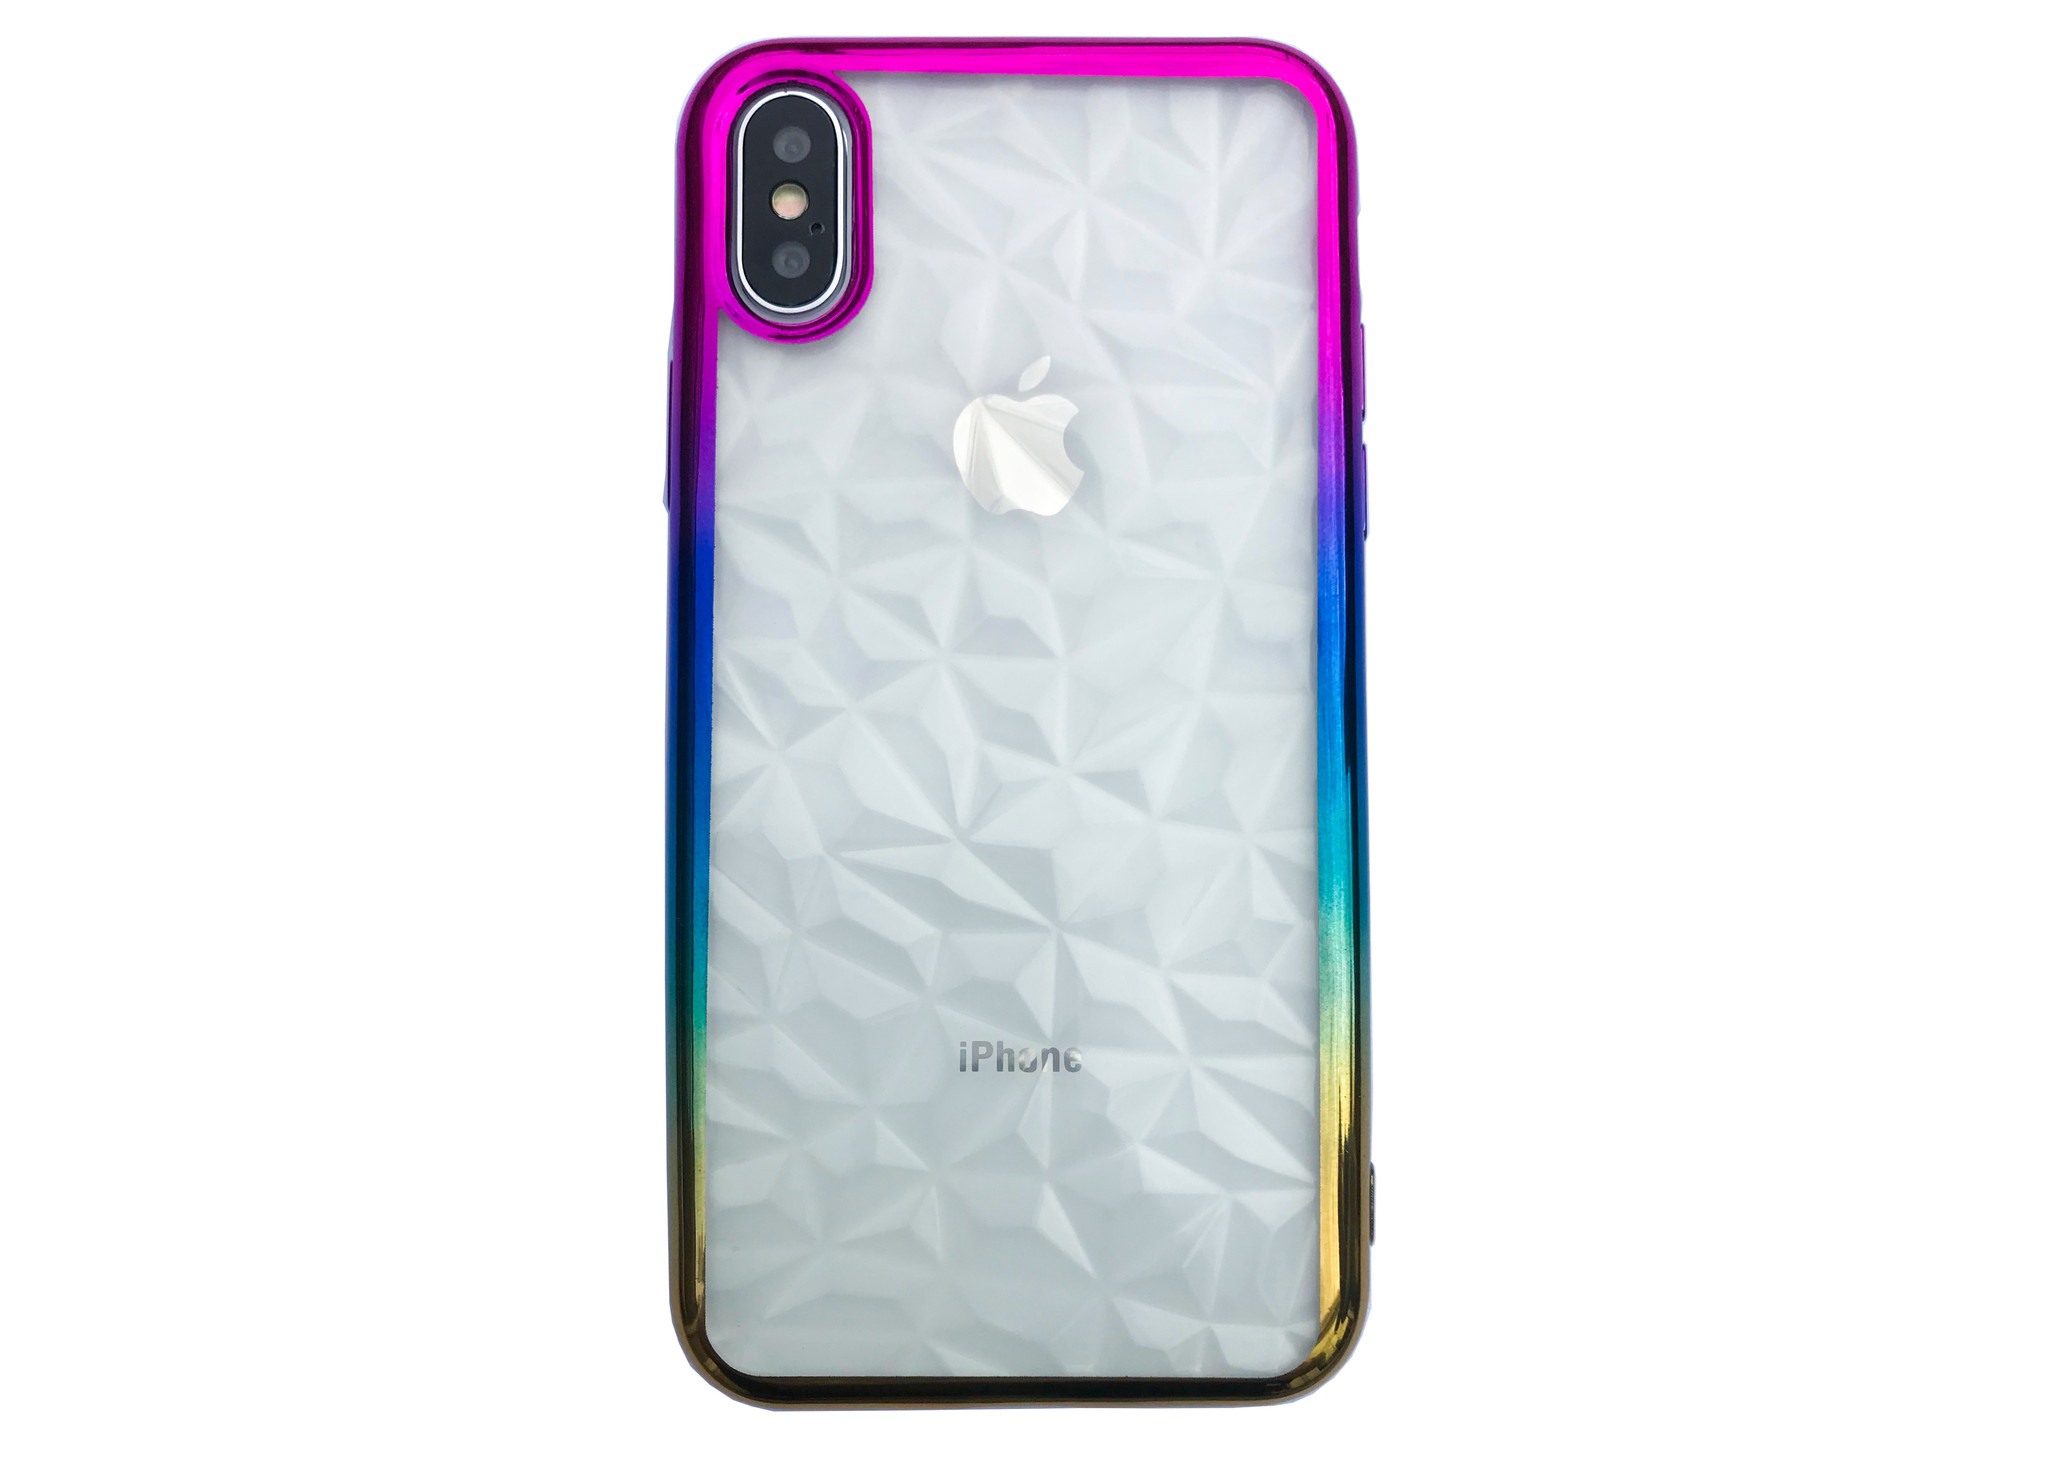 Smartphonehoesje iPhone 6s | Multicolor rand